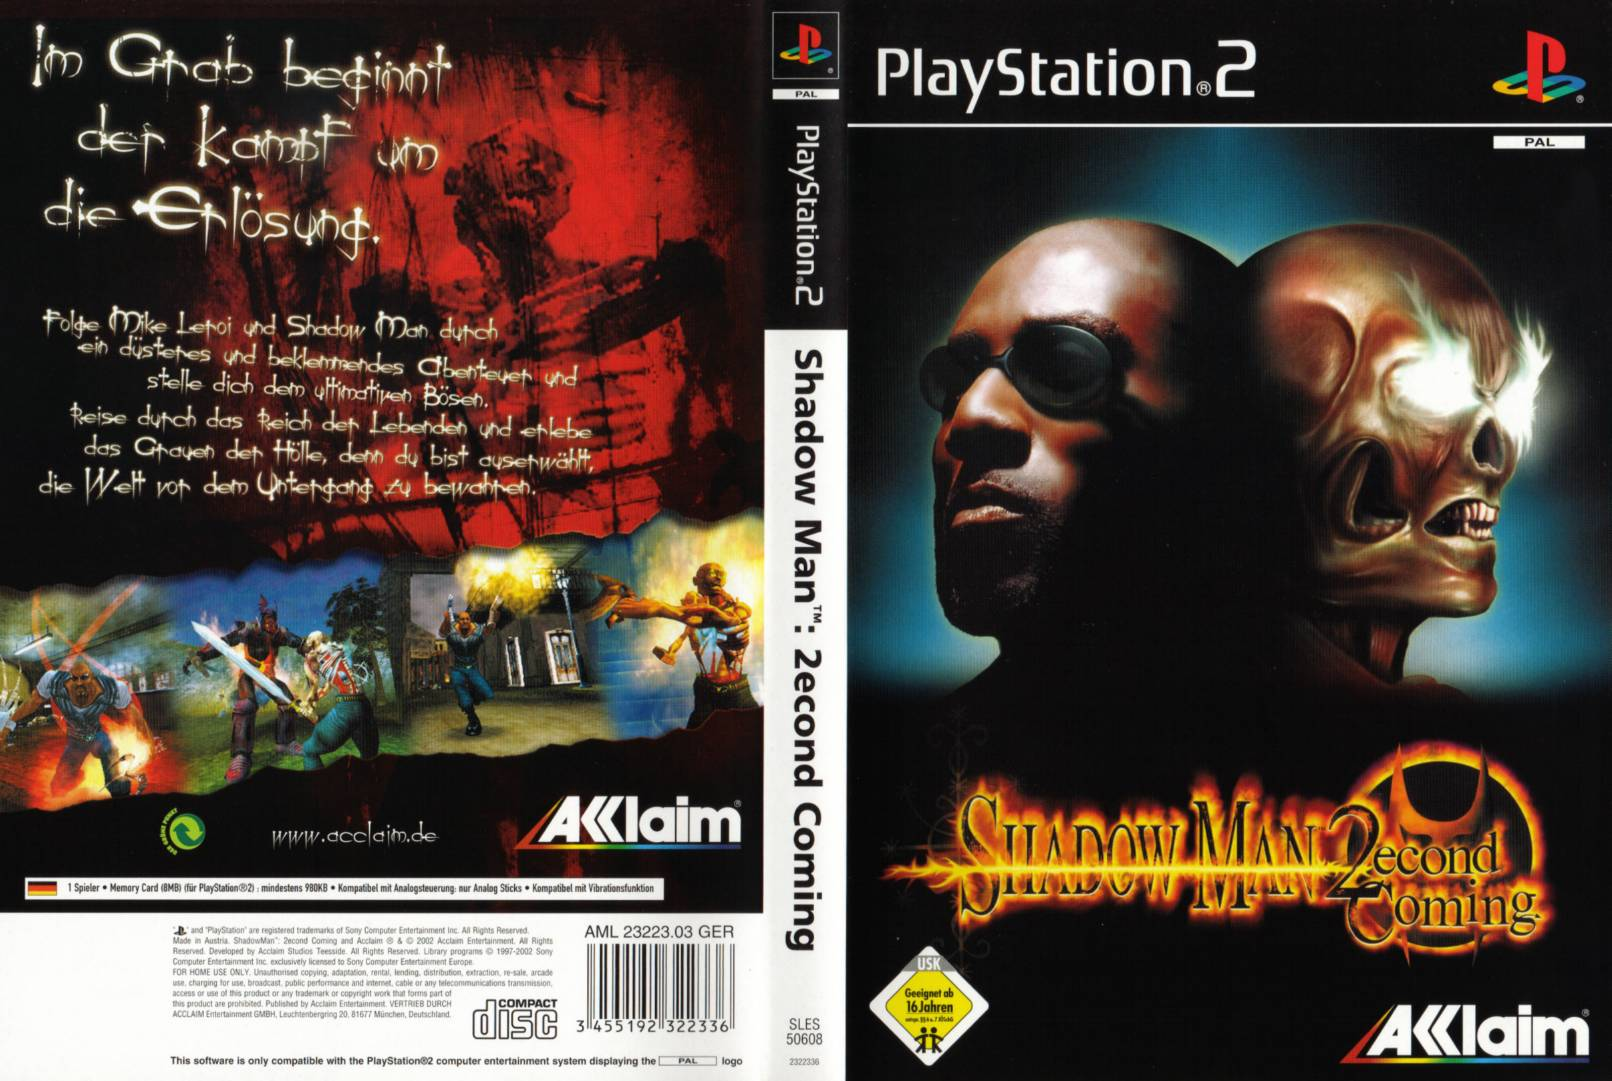 Shadow Man 2econd Coming PAL(de) Full | Playstation 2 Covers ...